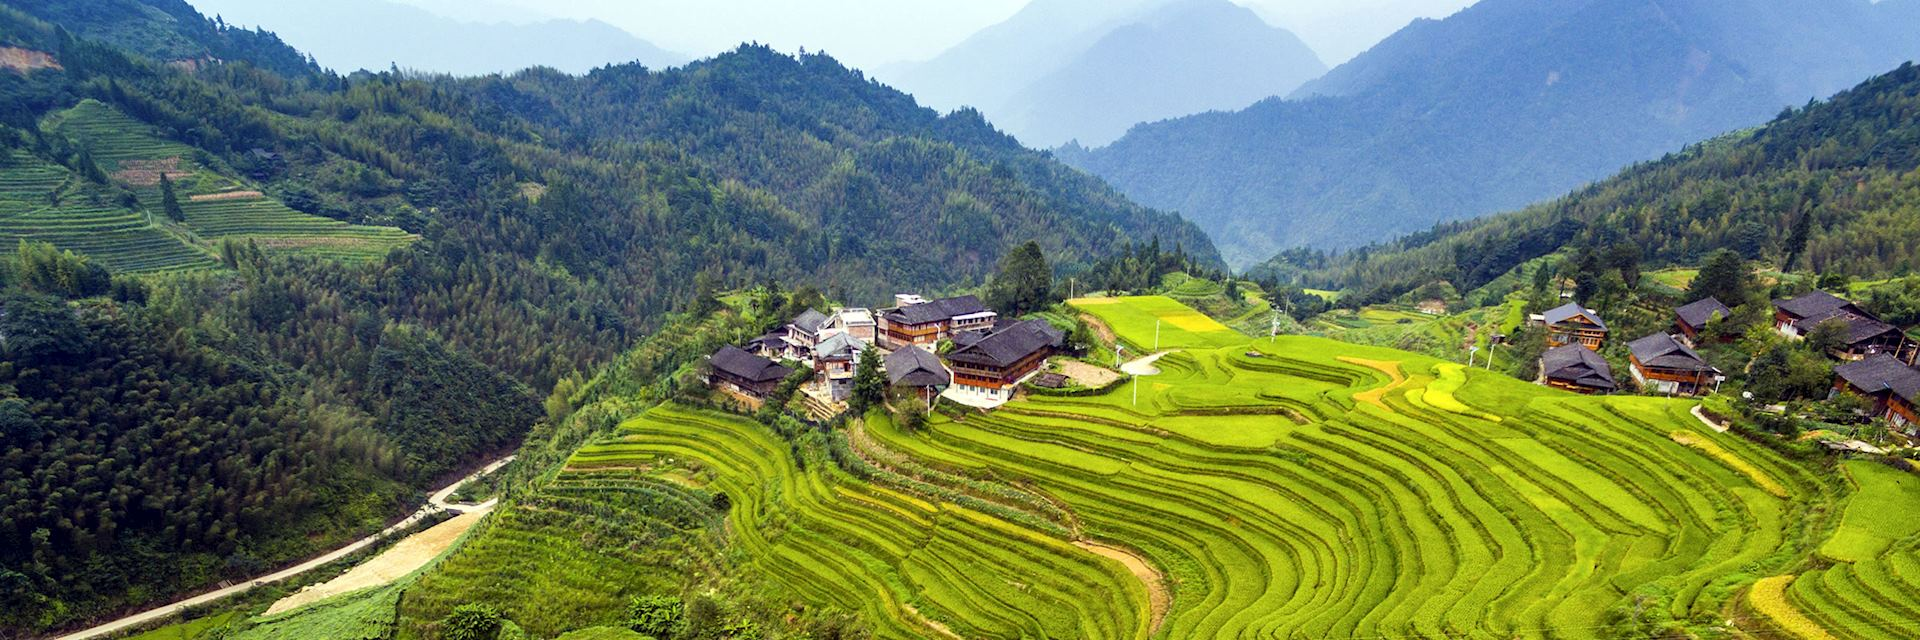 Terraced fields in Longji